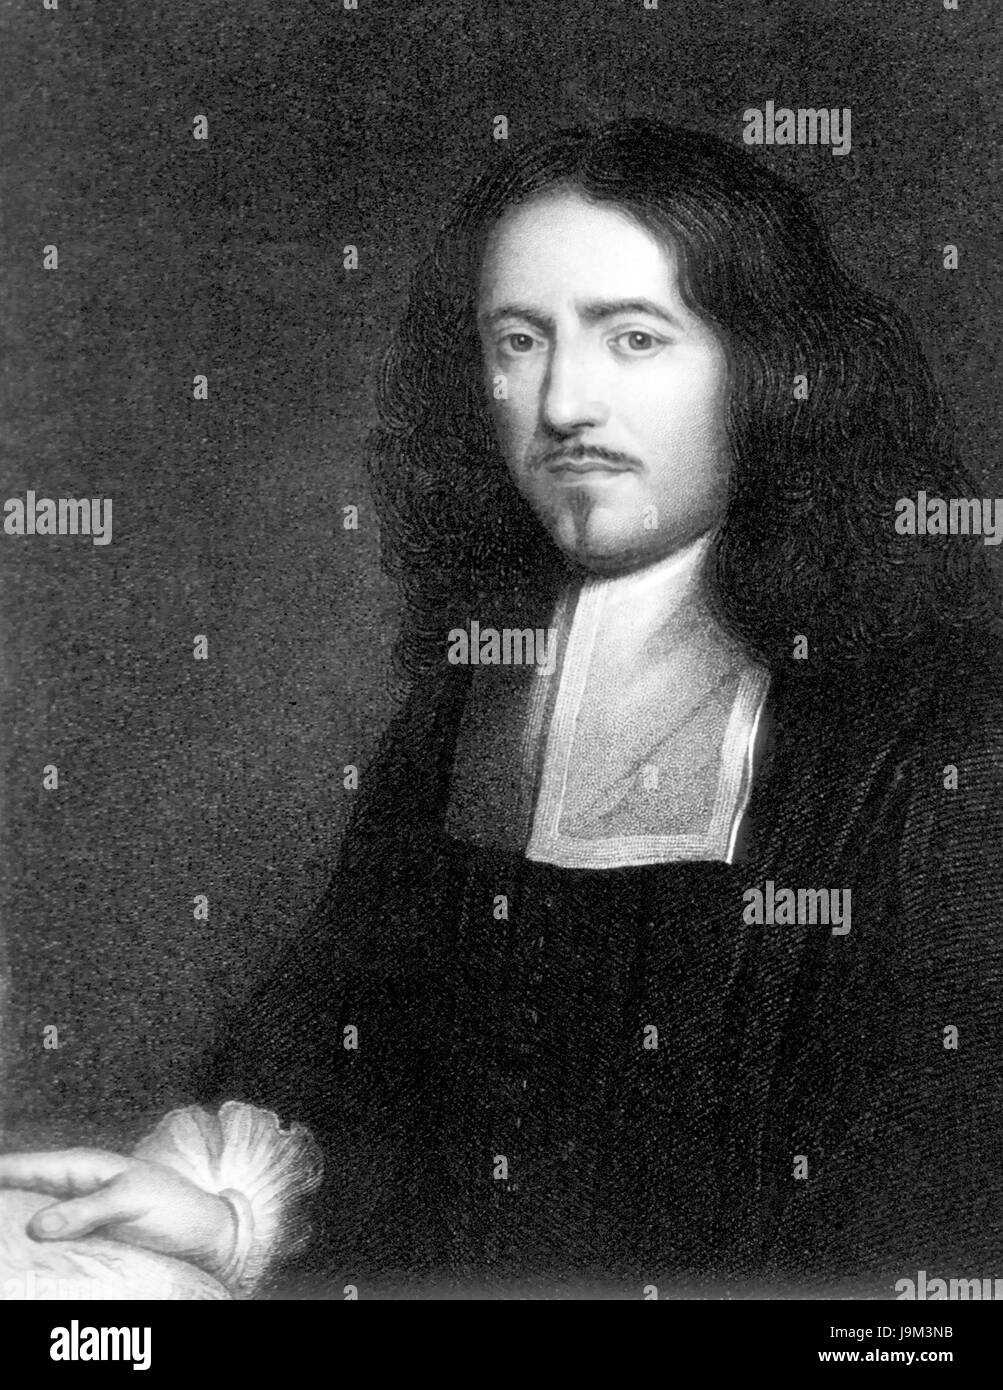 MARCELLO MALPIGHI (1628-1694) Italian physician and biologist - Stock Image